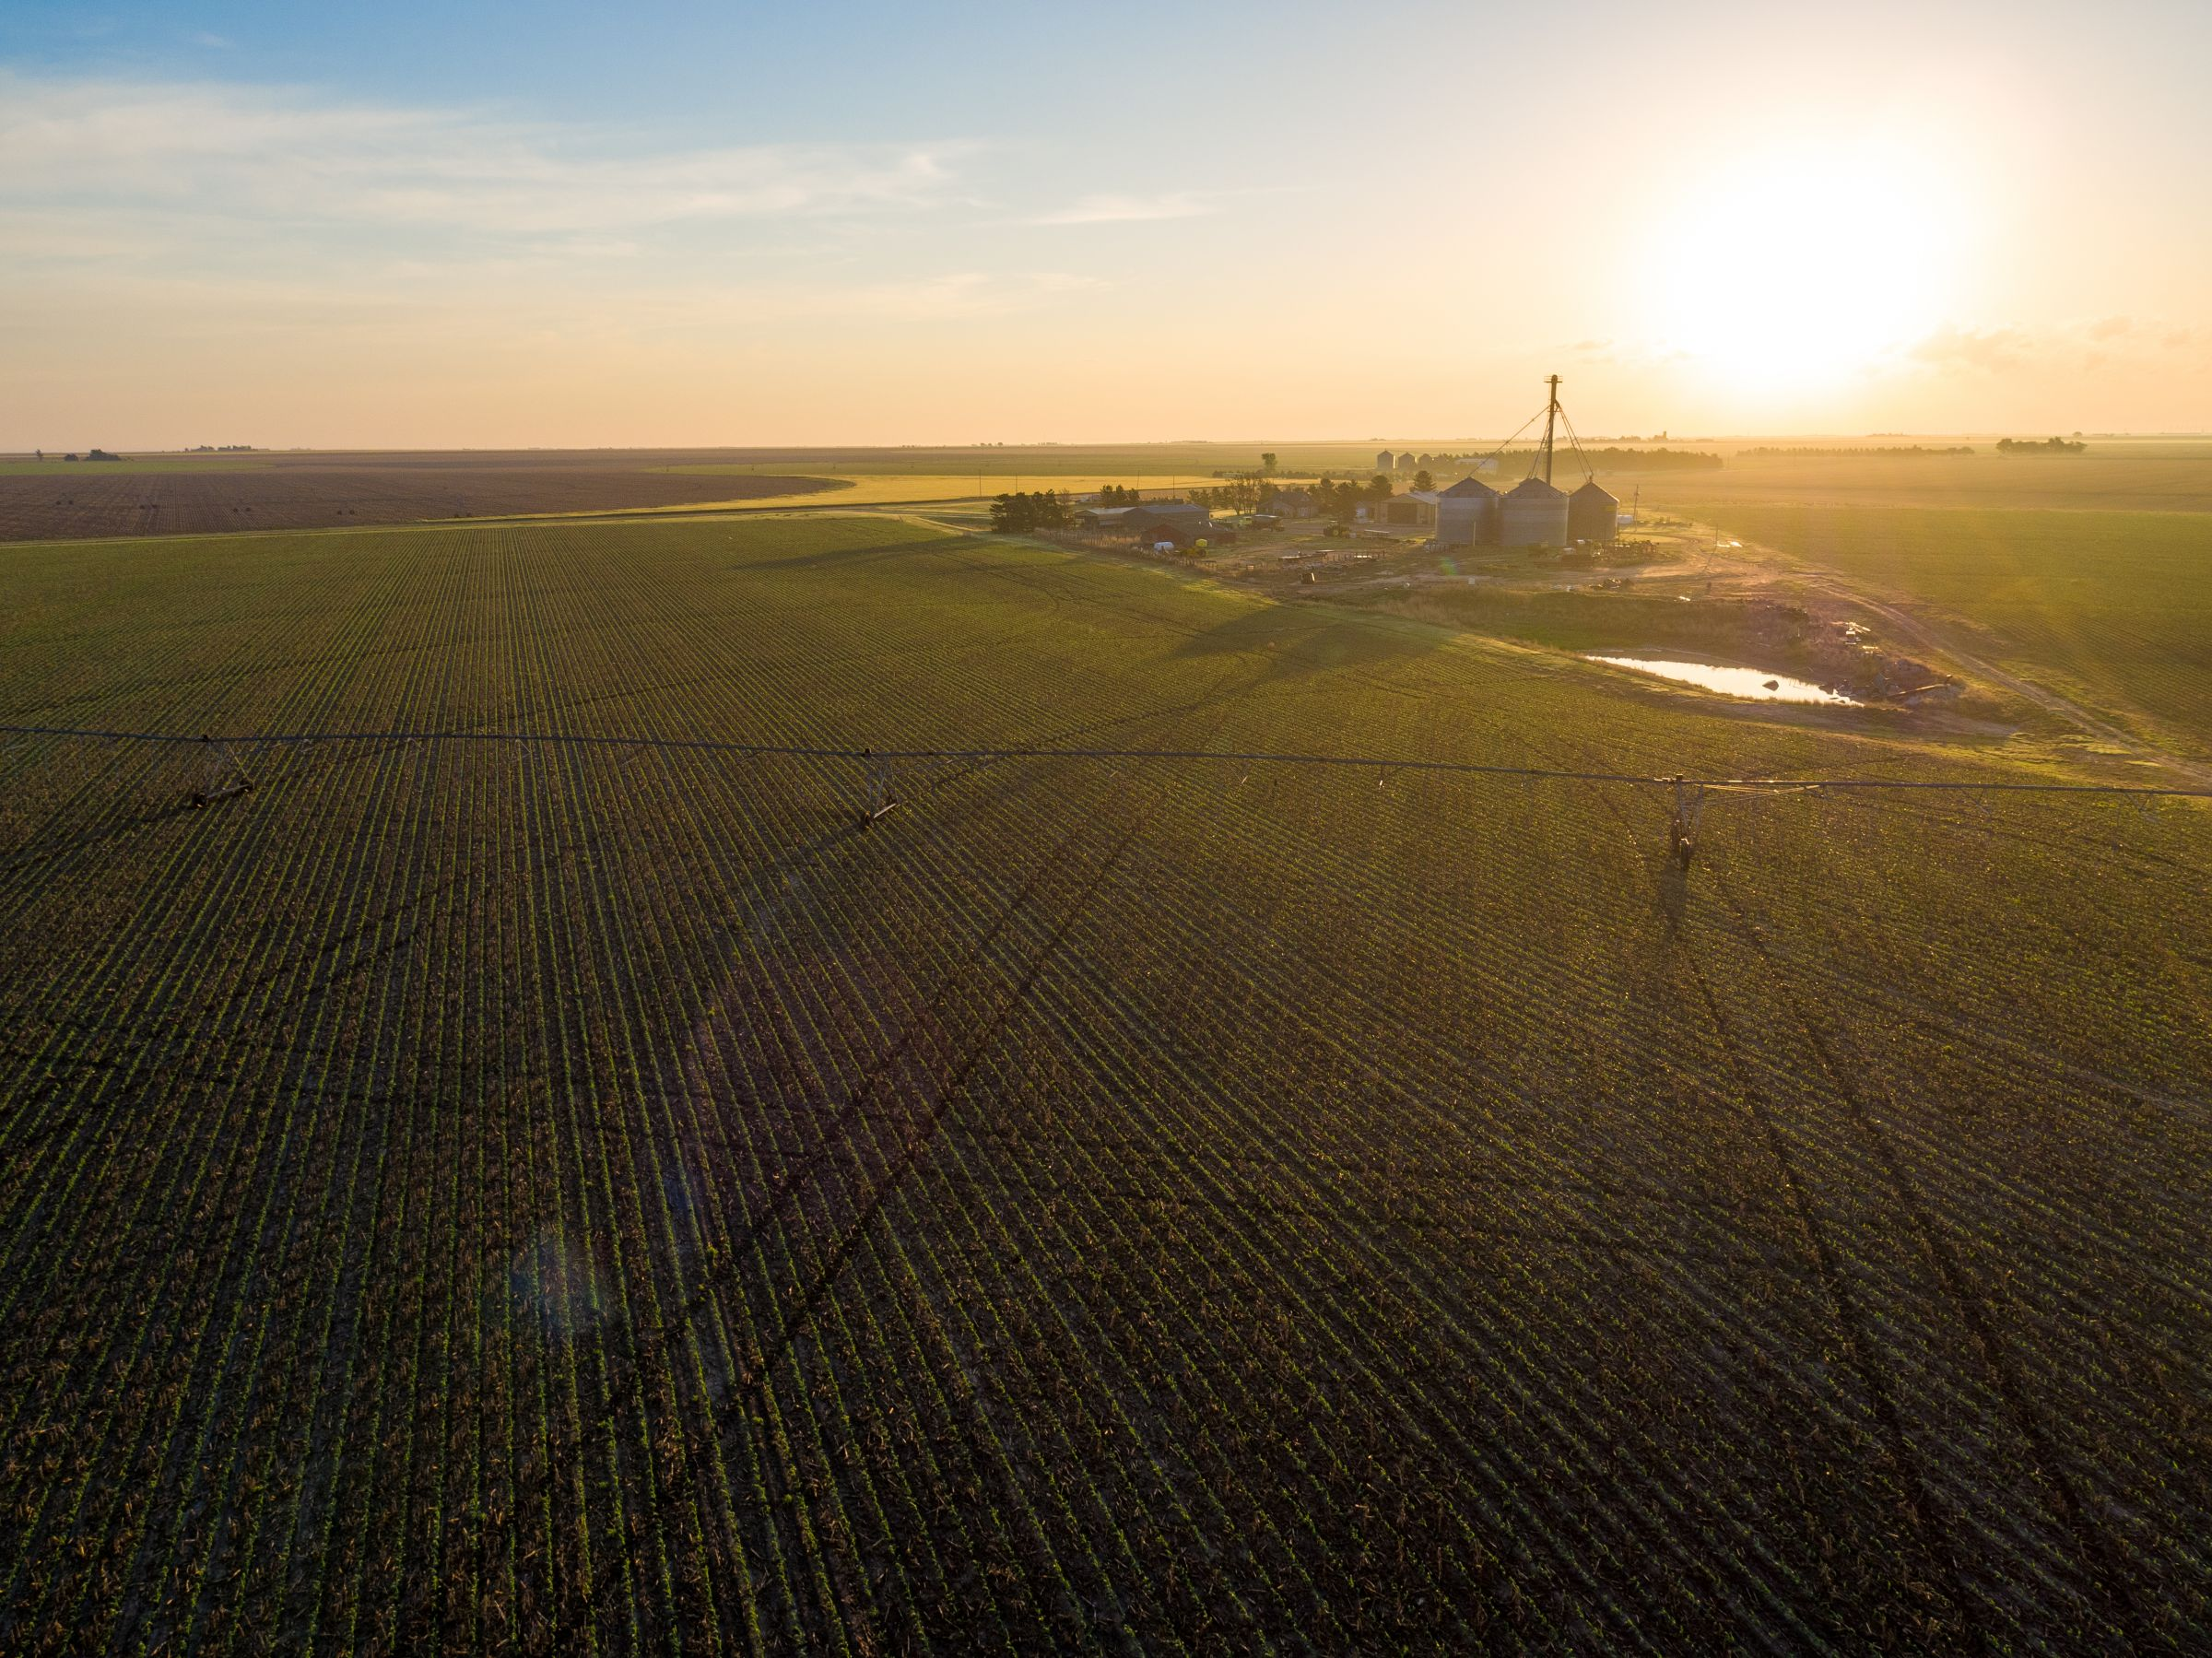 auctions-gray-haskell-county-kansas-2990-acres-listing-number-15570-2-2021-06-11-183958.jpeg